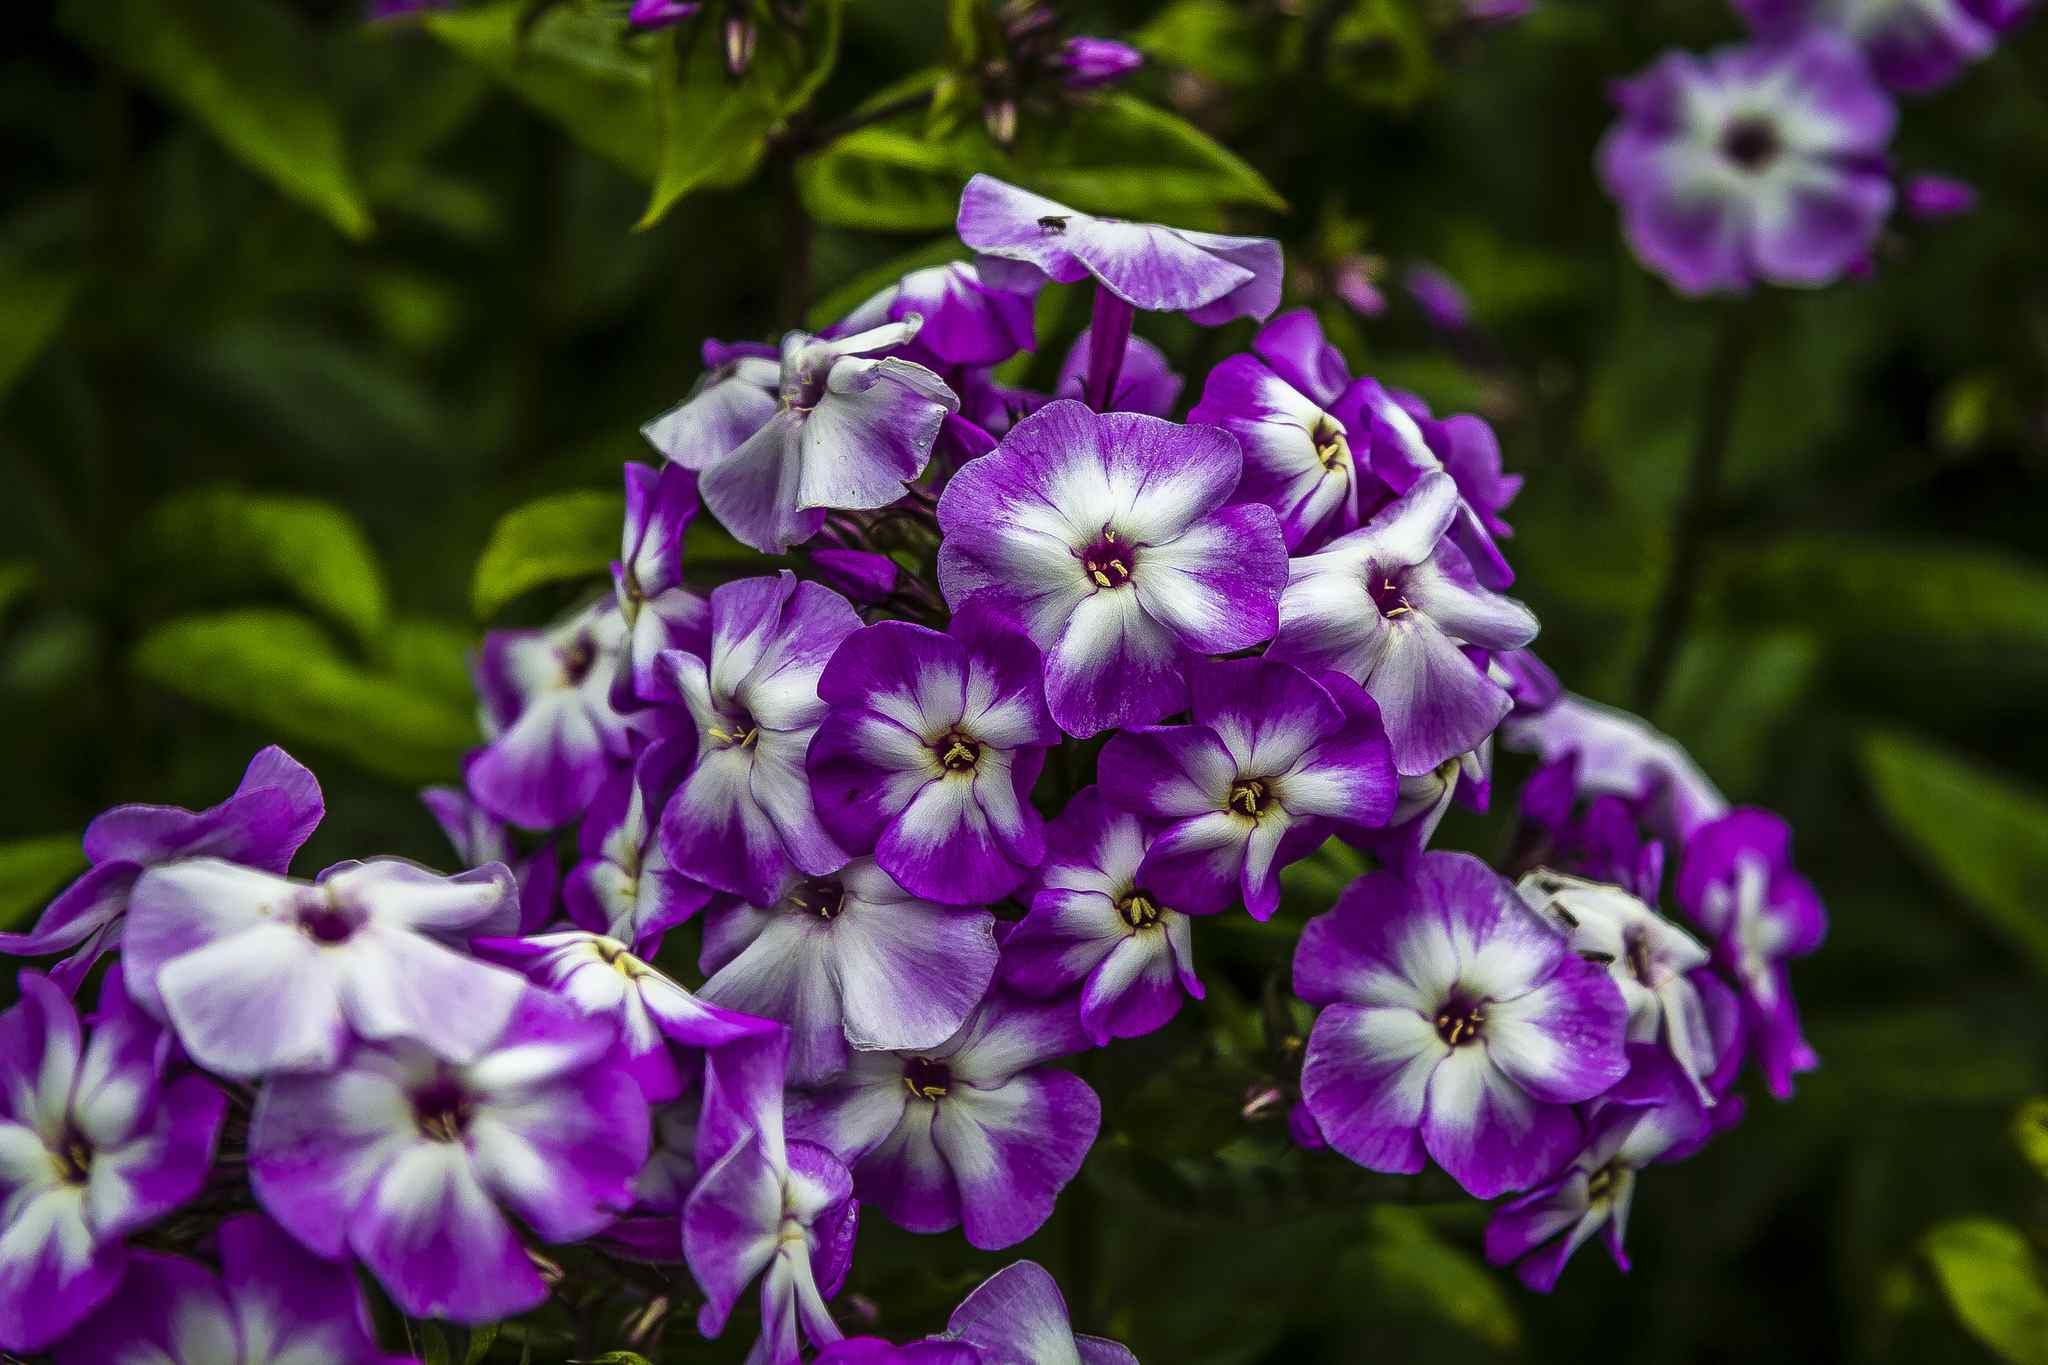 Phlox paniculata 'Little Boy' with its bicolored flowers.